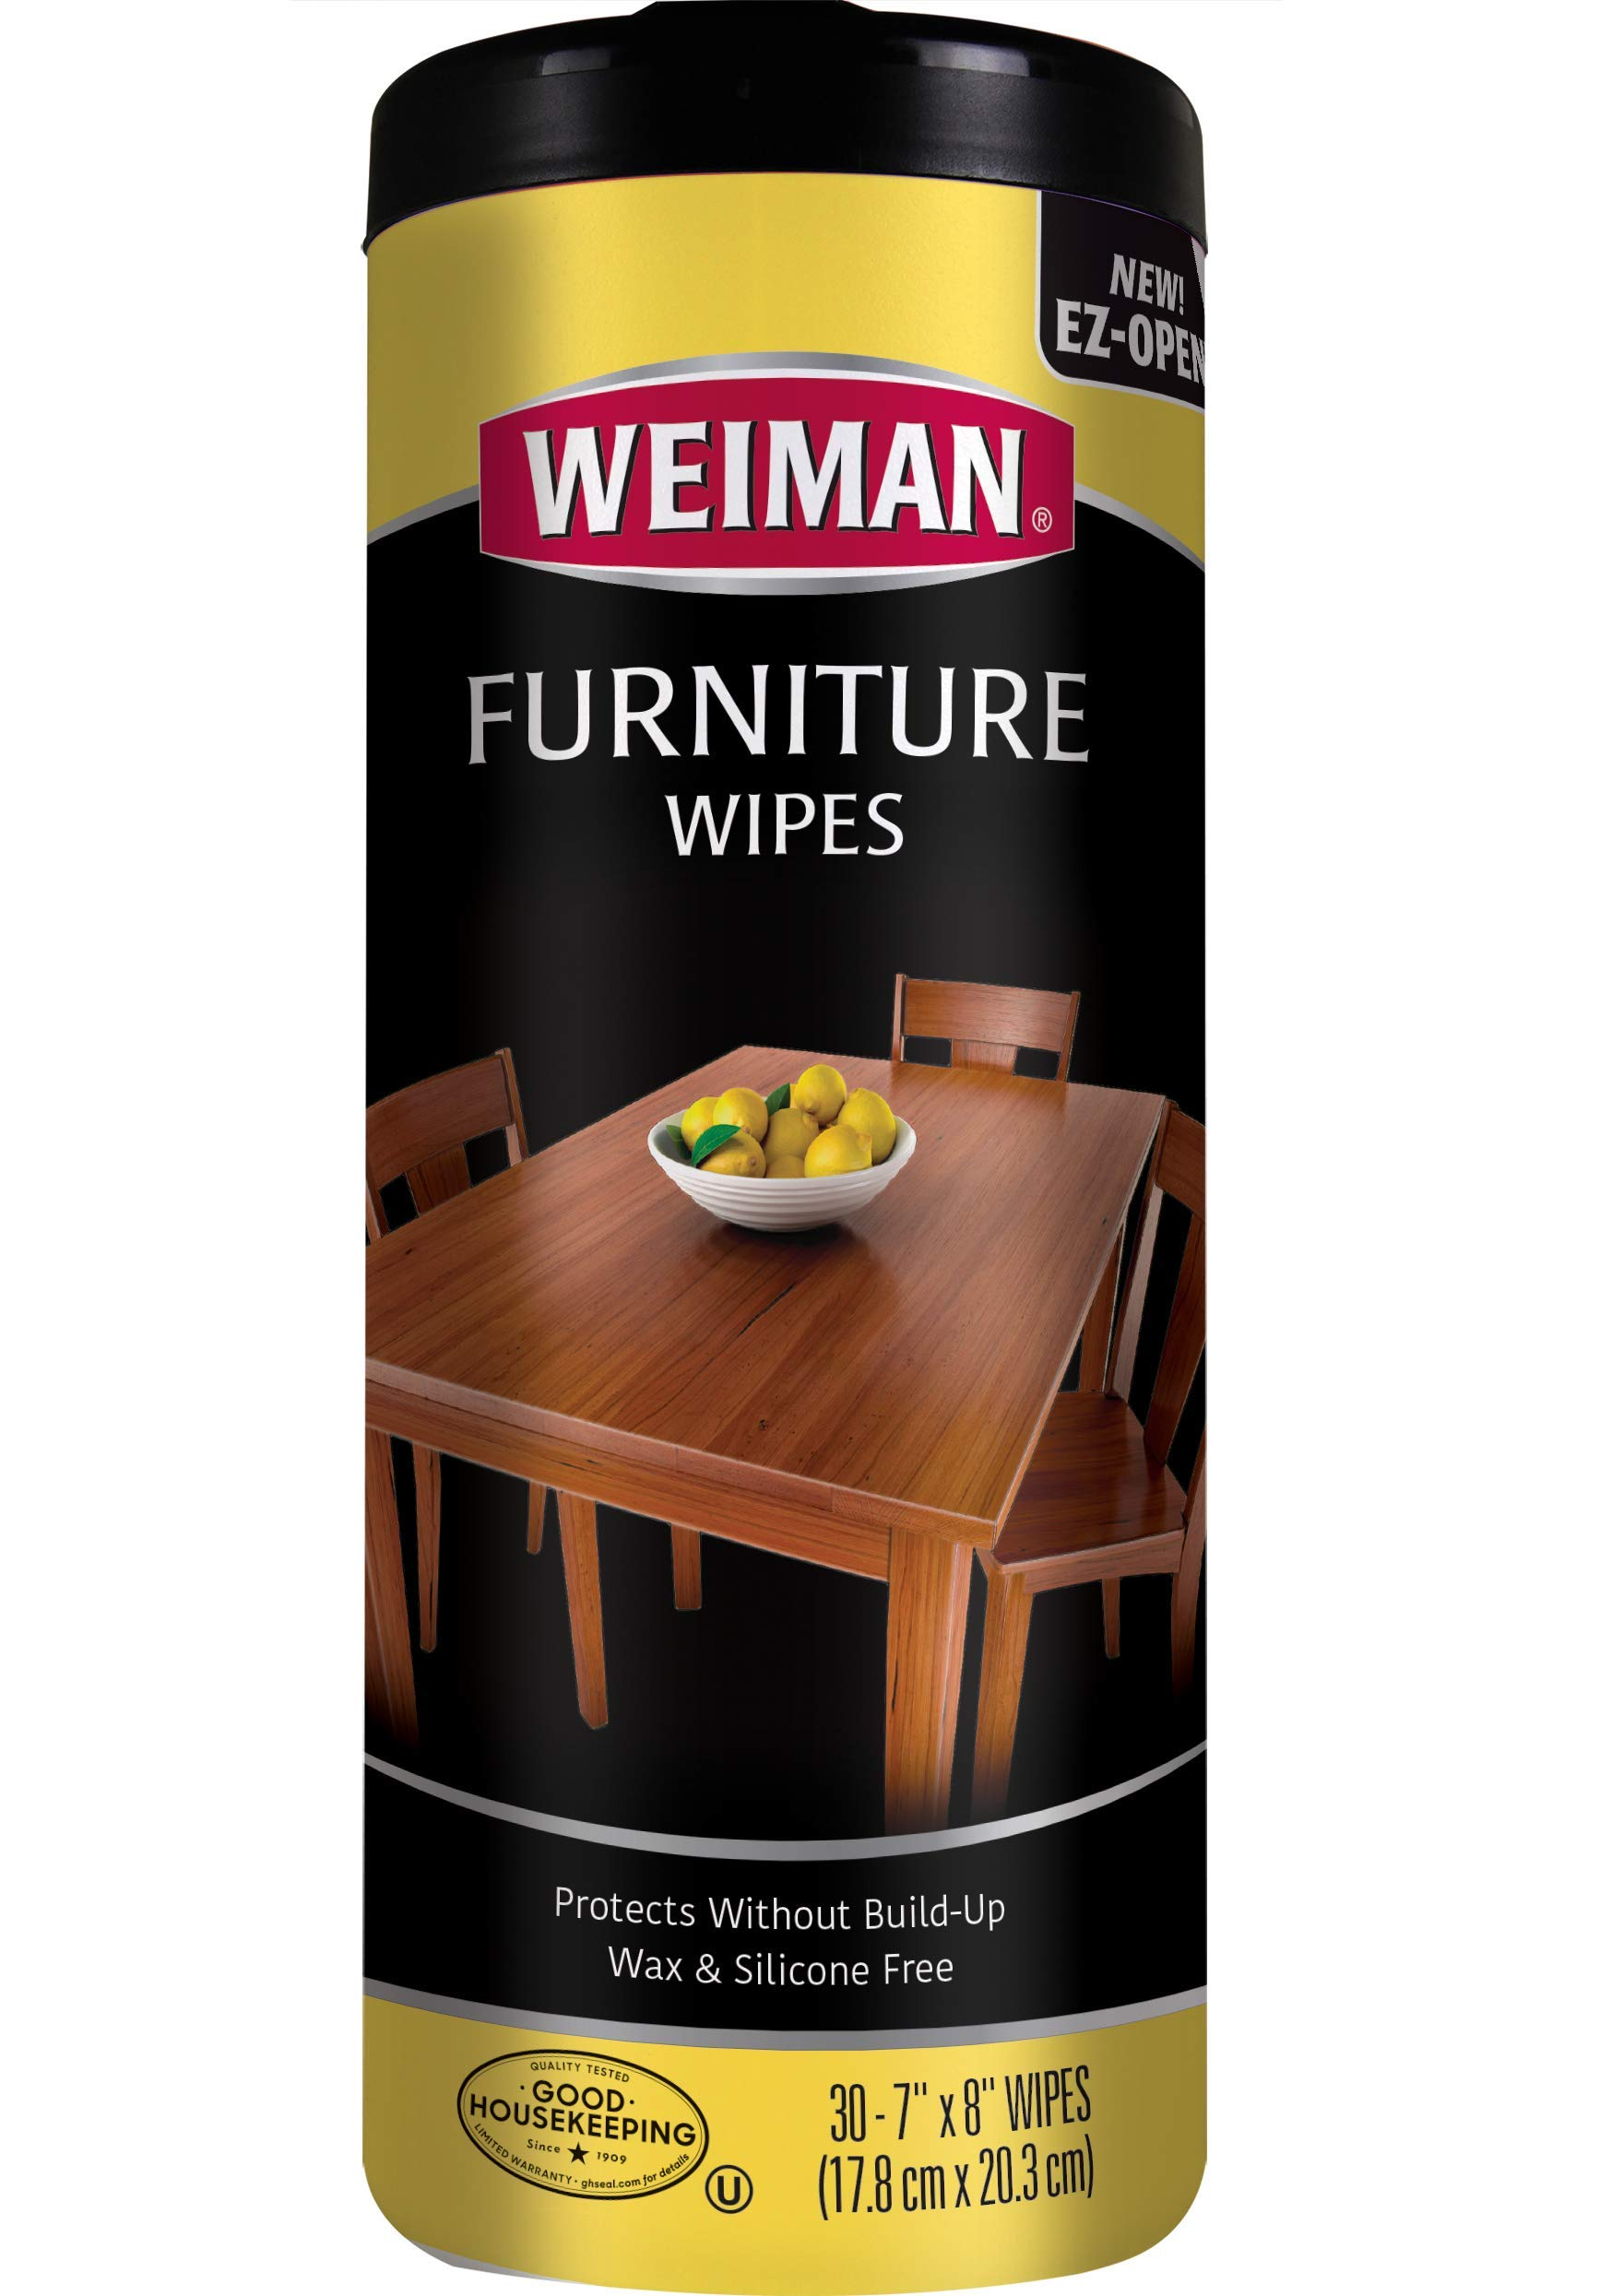 Weiman Wood Cleaner and Polish Wipes - Non Toxic For Furniture To Beautify & Protect, No Build-Up, Contains UVX-15, Pleasant Scent, Surface Safe - 30 Count